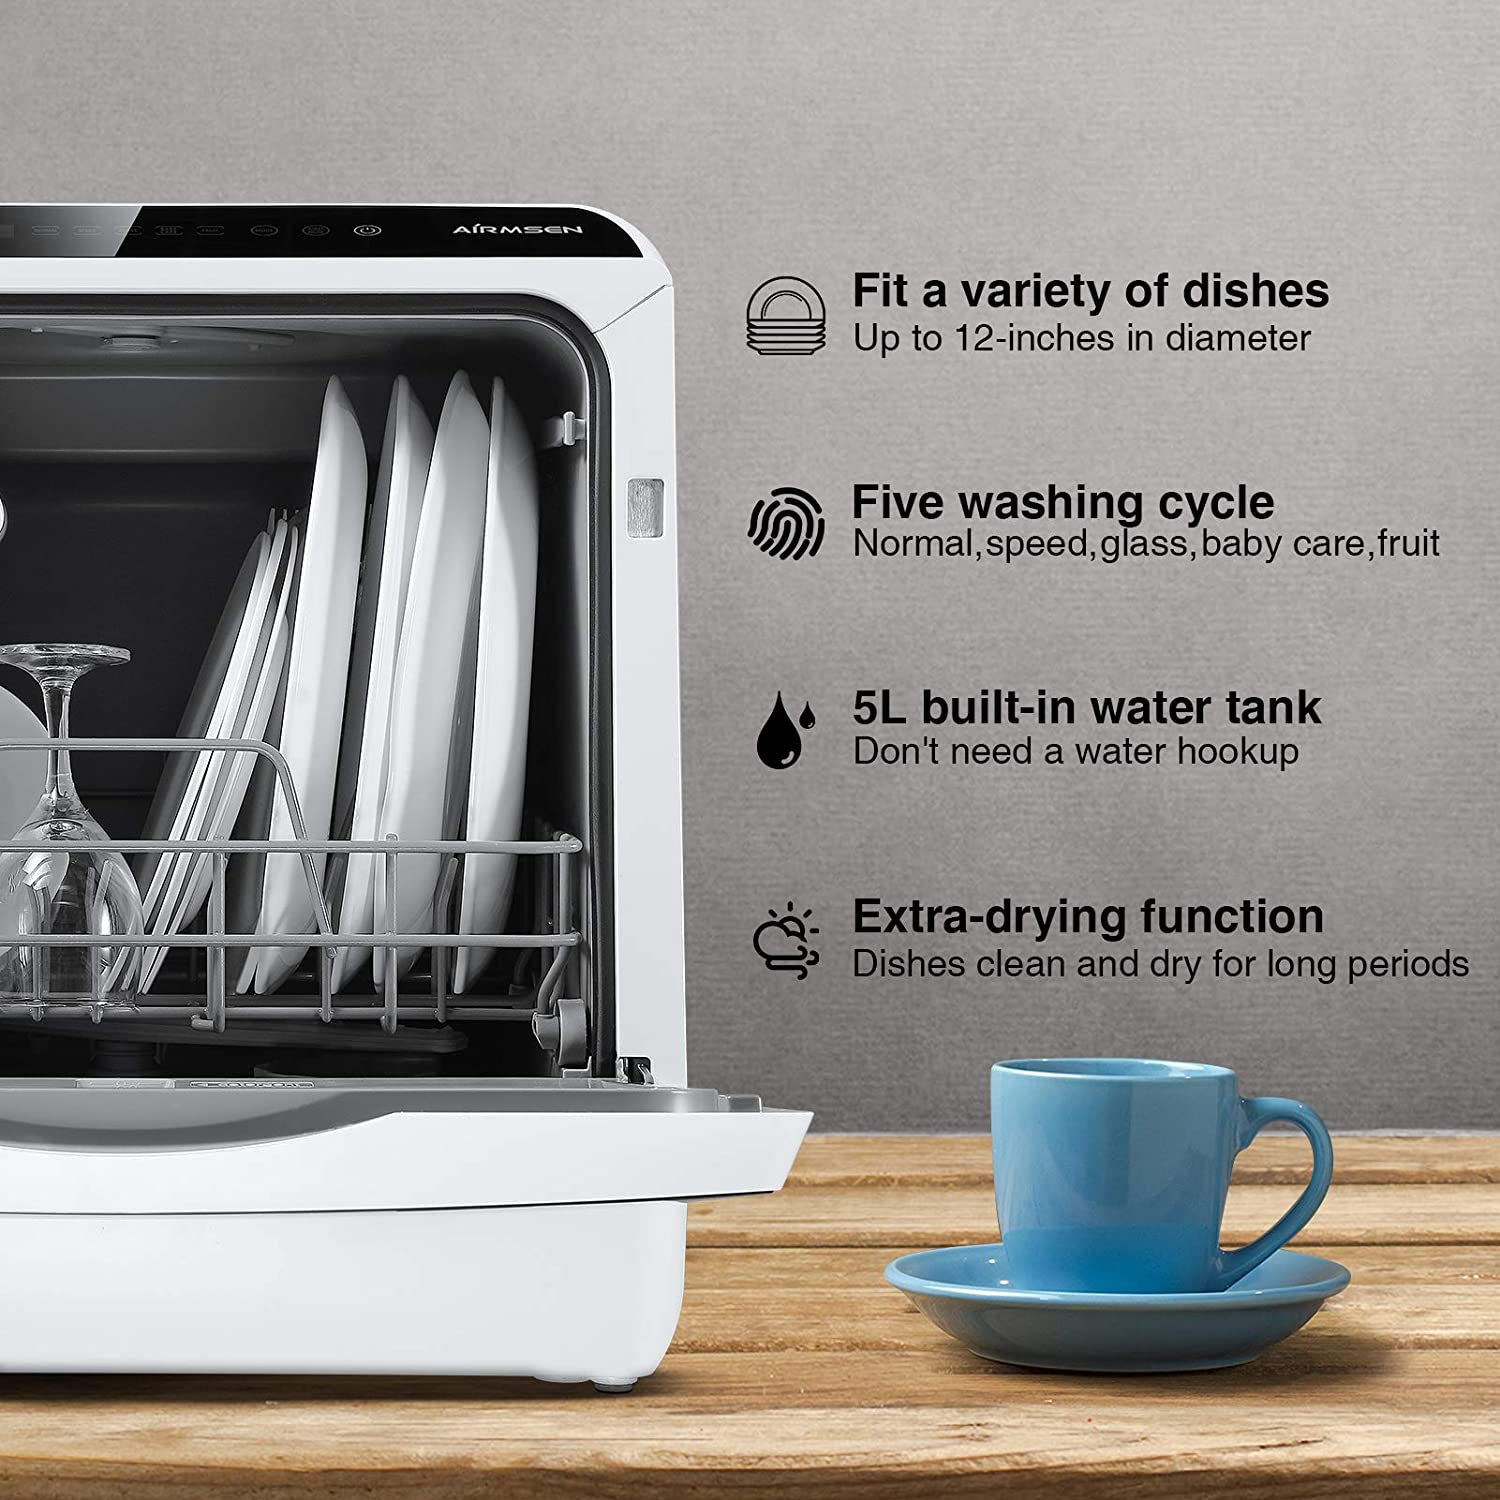 AIRMSEN AE-TDQR03 Portable Countertop Dishwasher, Compact Mini Dishwasher with 5-Liter Built-in Water Tank and Air-Dry Function, 5 Washing Programs, Baby Care, Glass & Fruit Wash-White/Black